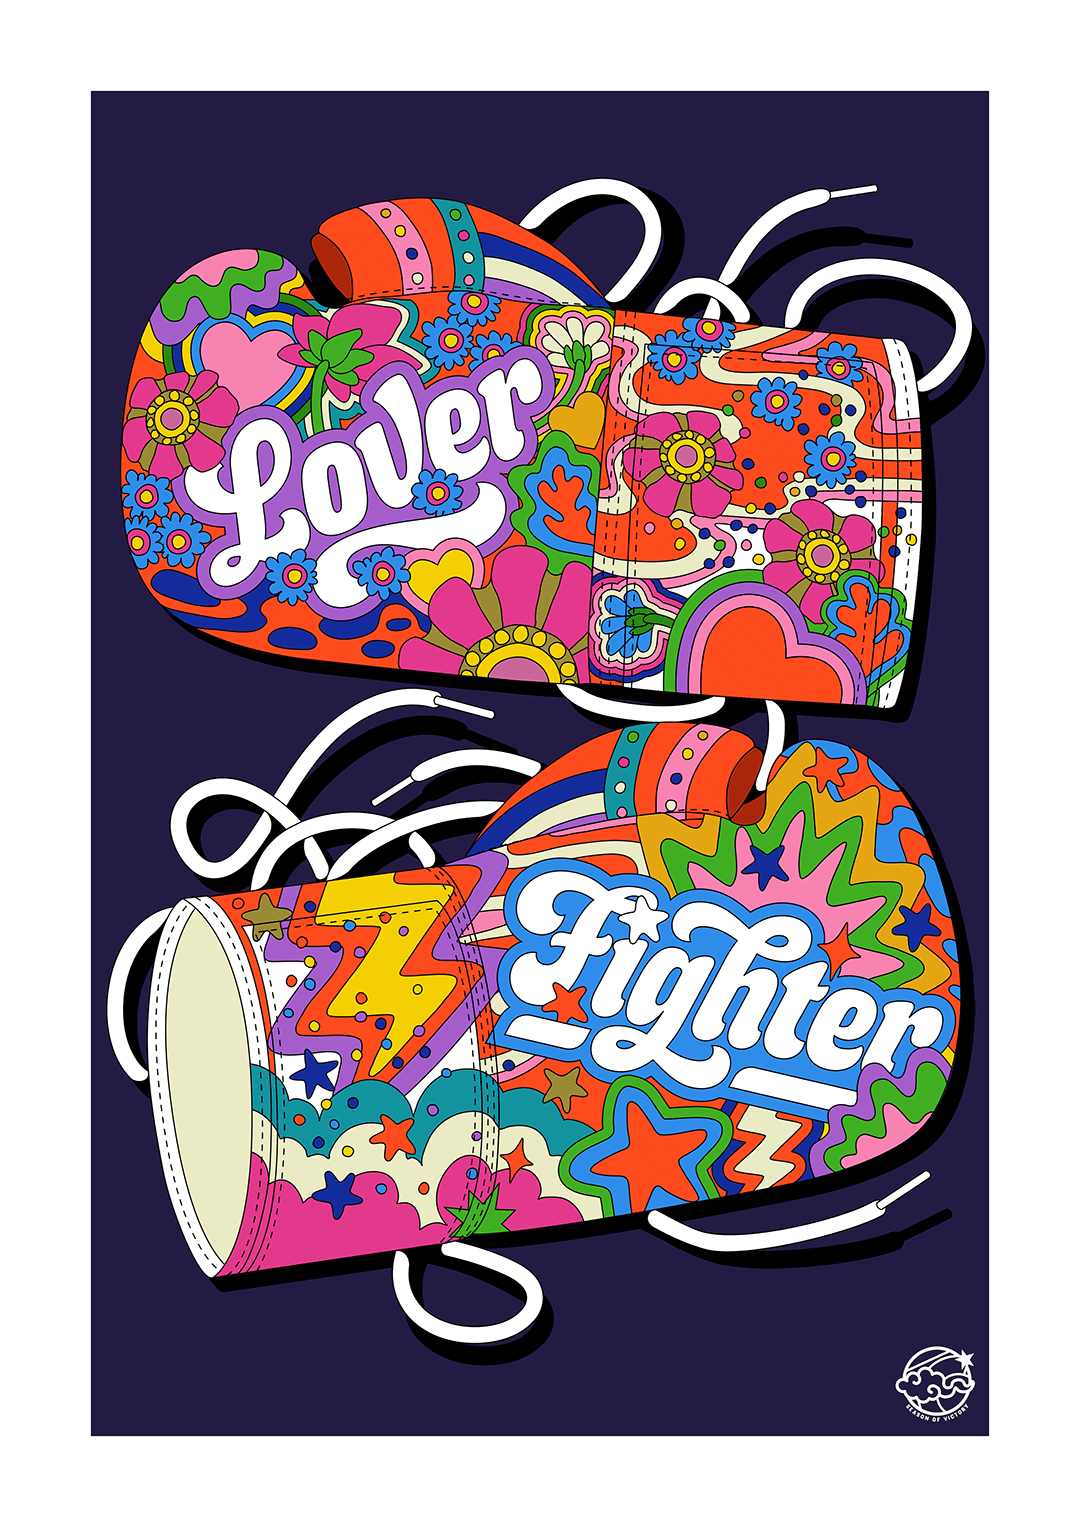 Lover + Fighter and London Parakeet illustrations